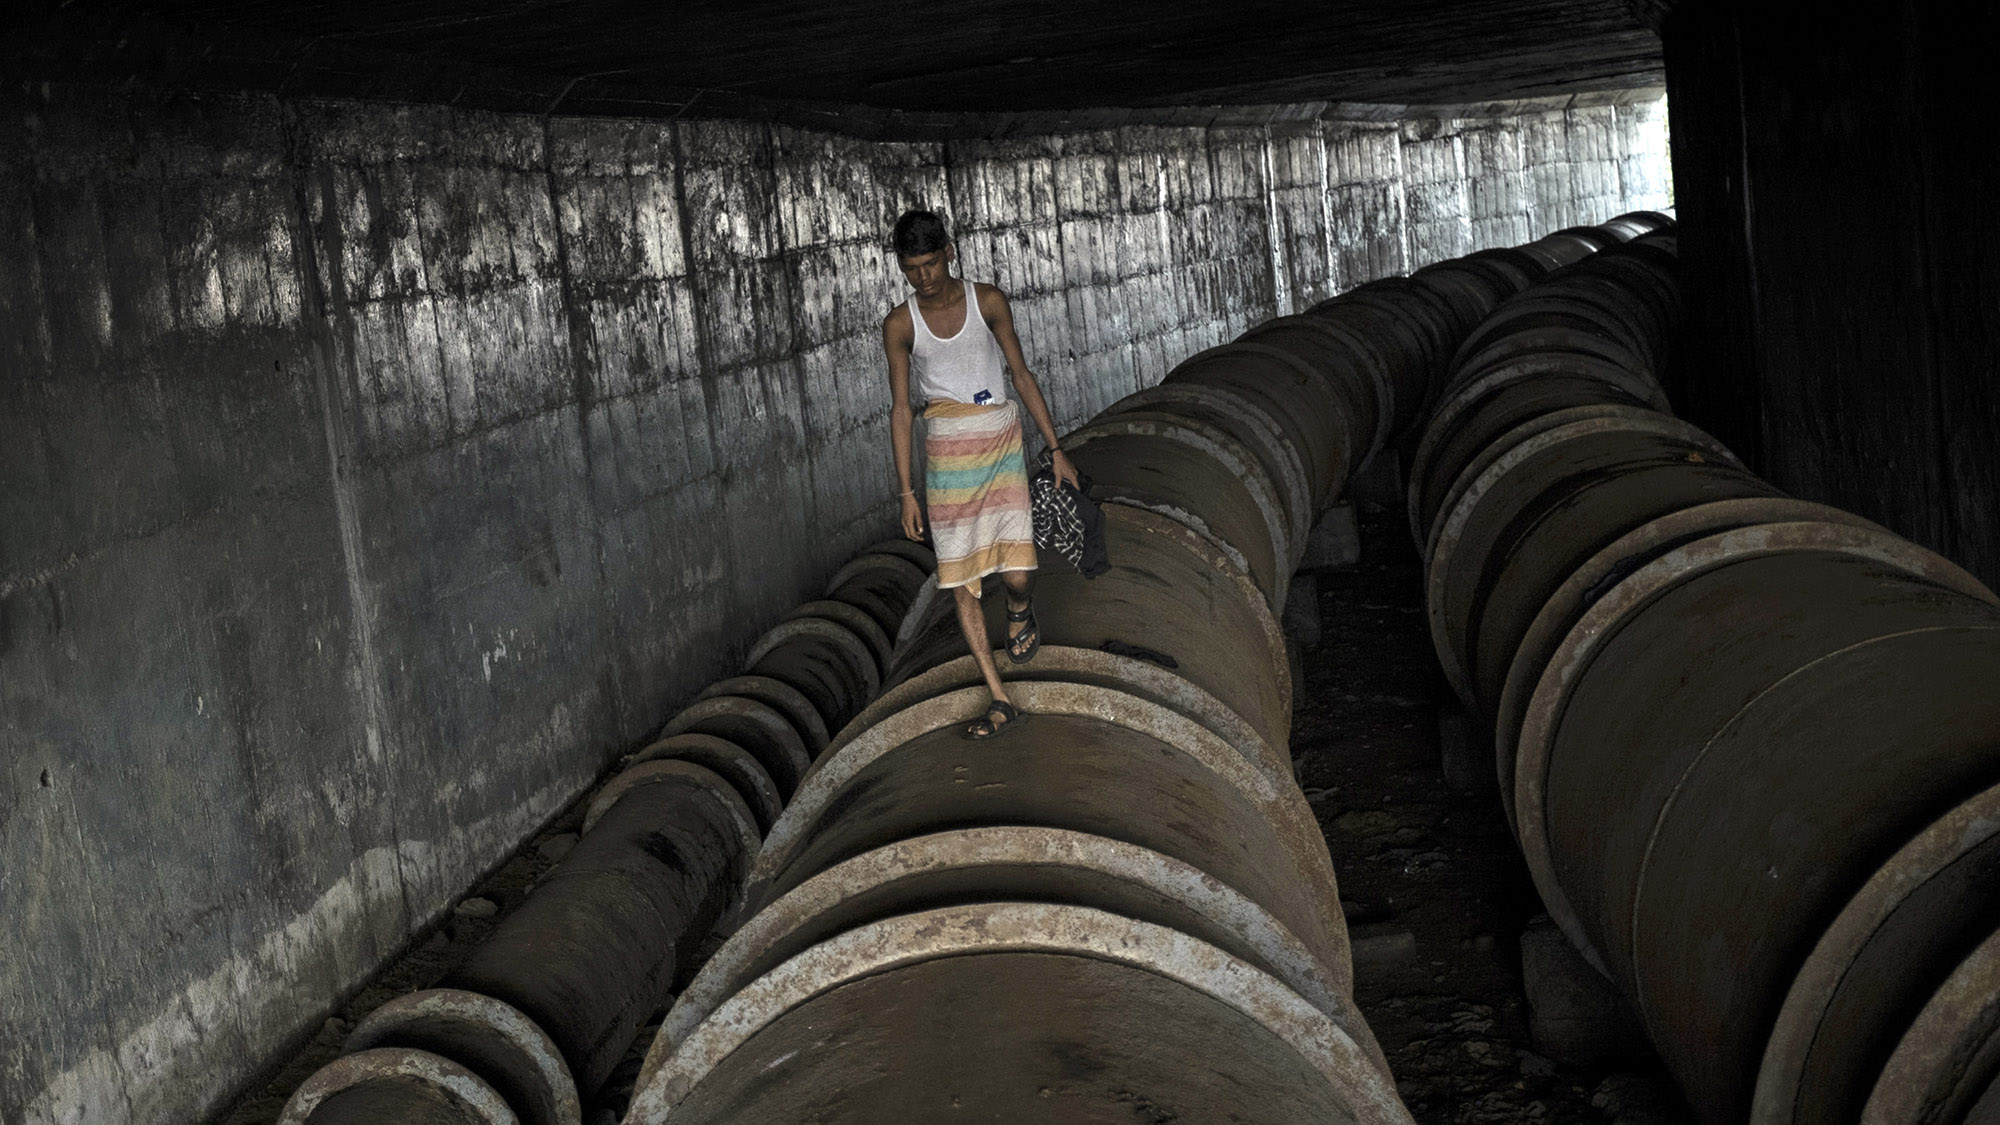 A man walks on a water pipeline used a as pathway under a bridge in Mumbai August 8, 2014. REUTERS/Danish Siddiqui (INDIA - Tags: SOCIETY) - RTR41NNP